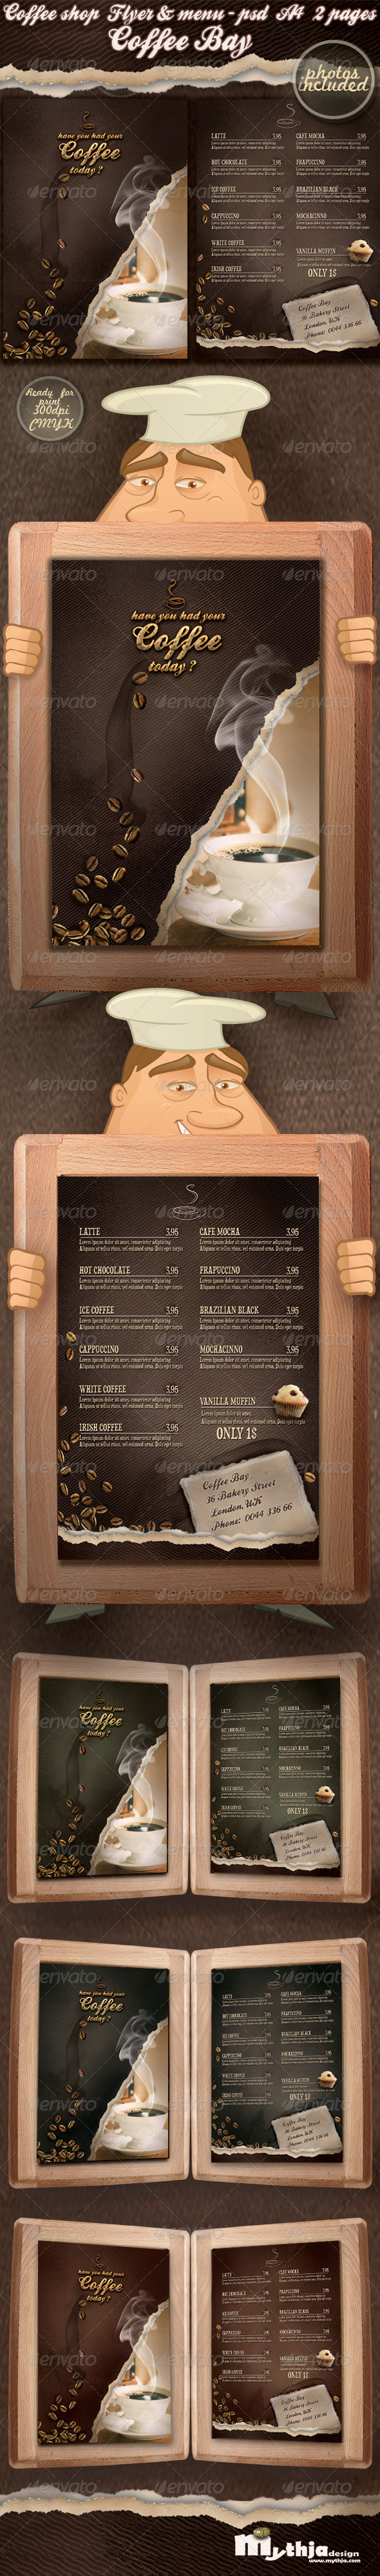 GraphicRiver Coffee shop flyer & menu photos included 1959044